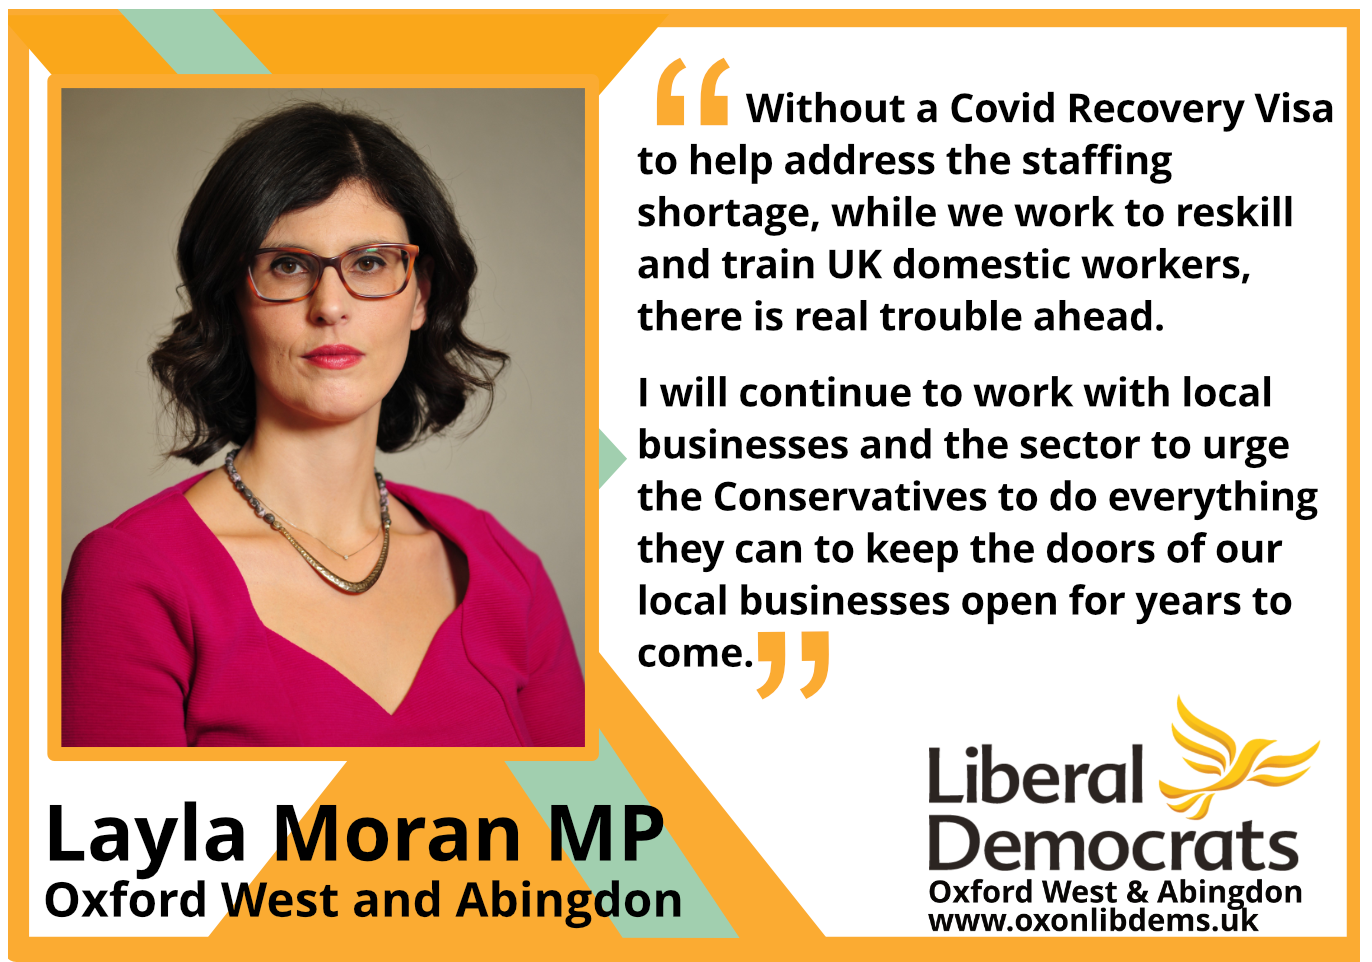 """key_Without a Covid Recovery Visa to help address the staffing shortage, while we work to reskill and train UK domestic workers, there is real trouble ahead.I will continue to work with local businesses and the sector to urge the Conservatives to do everything they can to keep the doors of our local businesses open for years to come."""""""